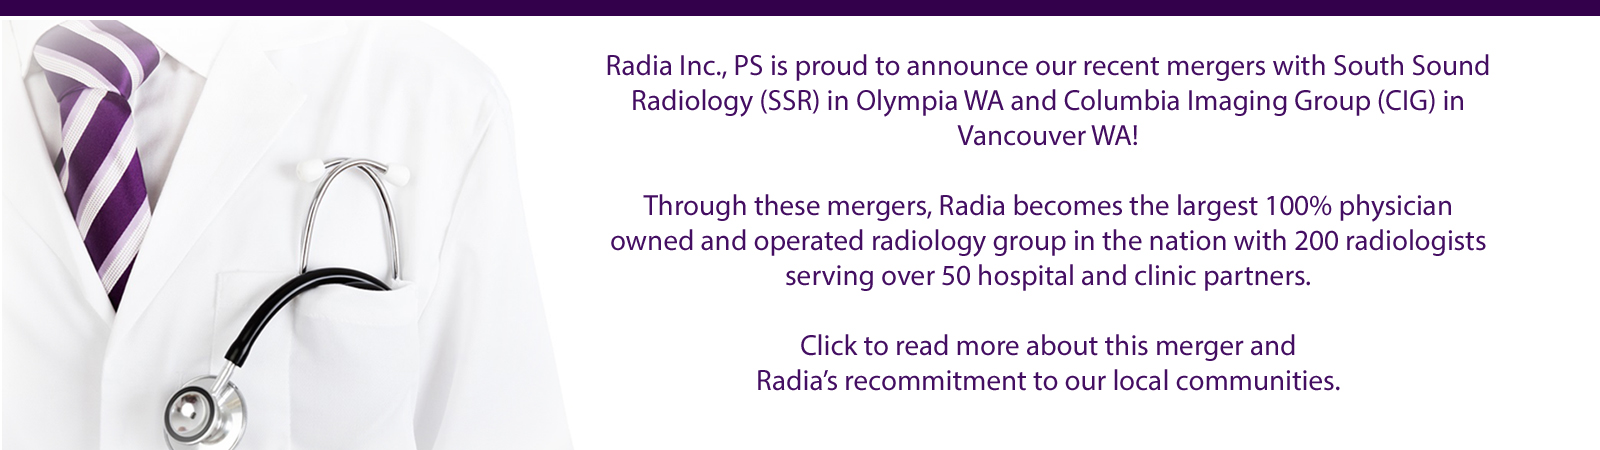 Radia Inc., PS is proud to announce our recent mergers.